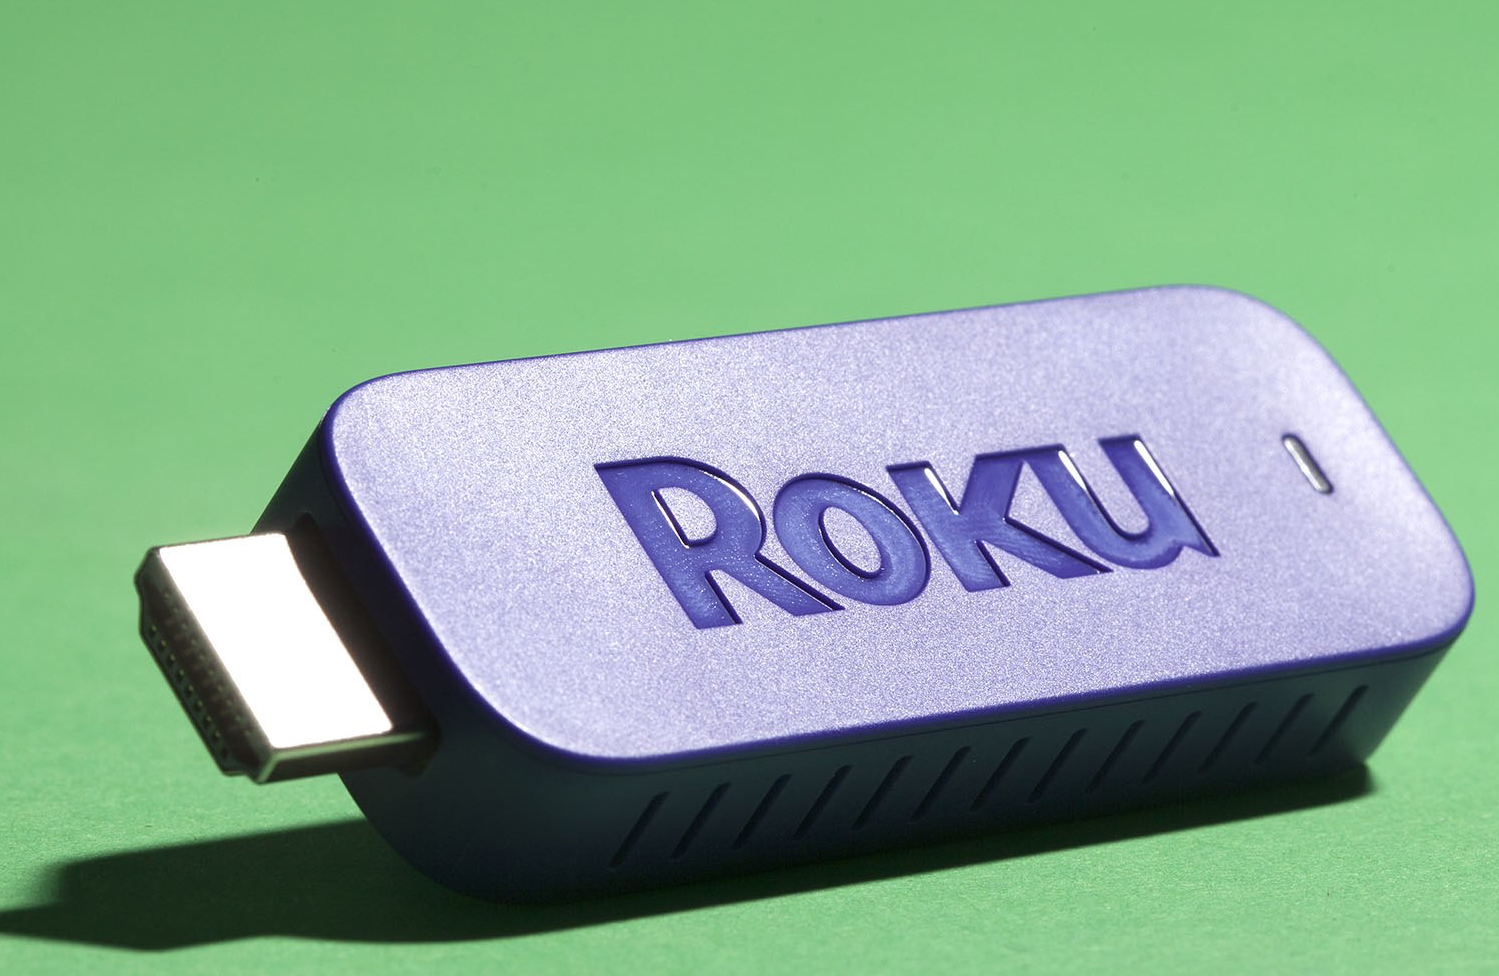 roku stock price